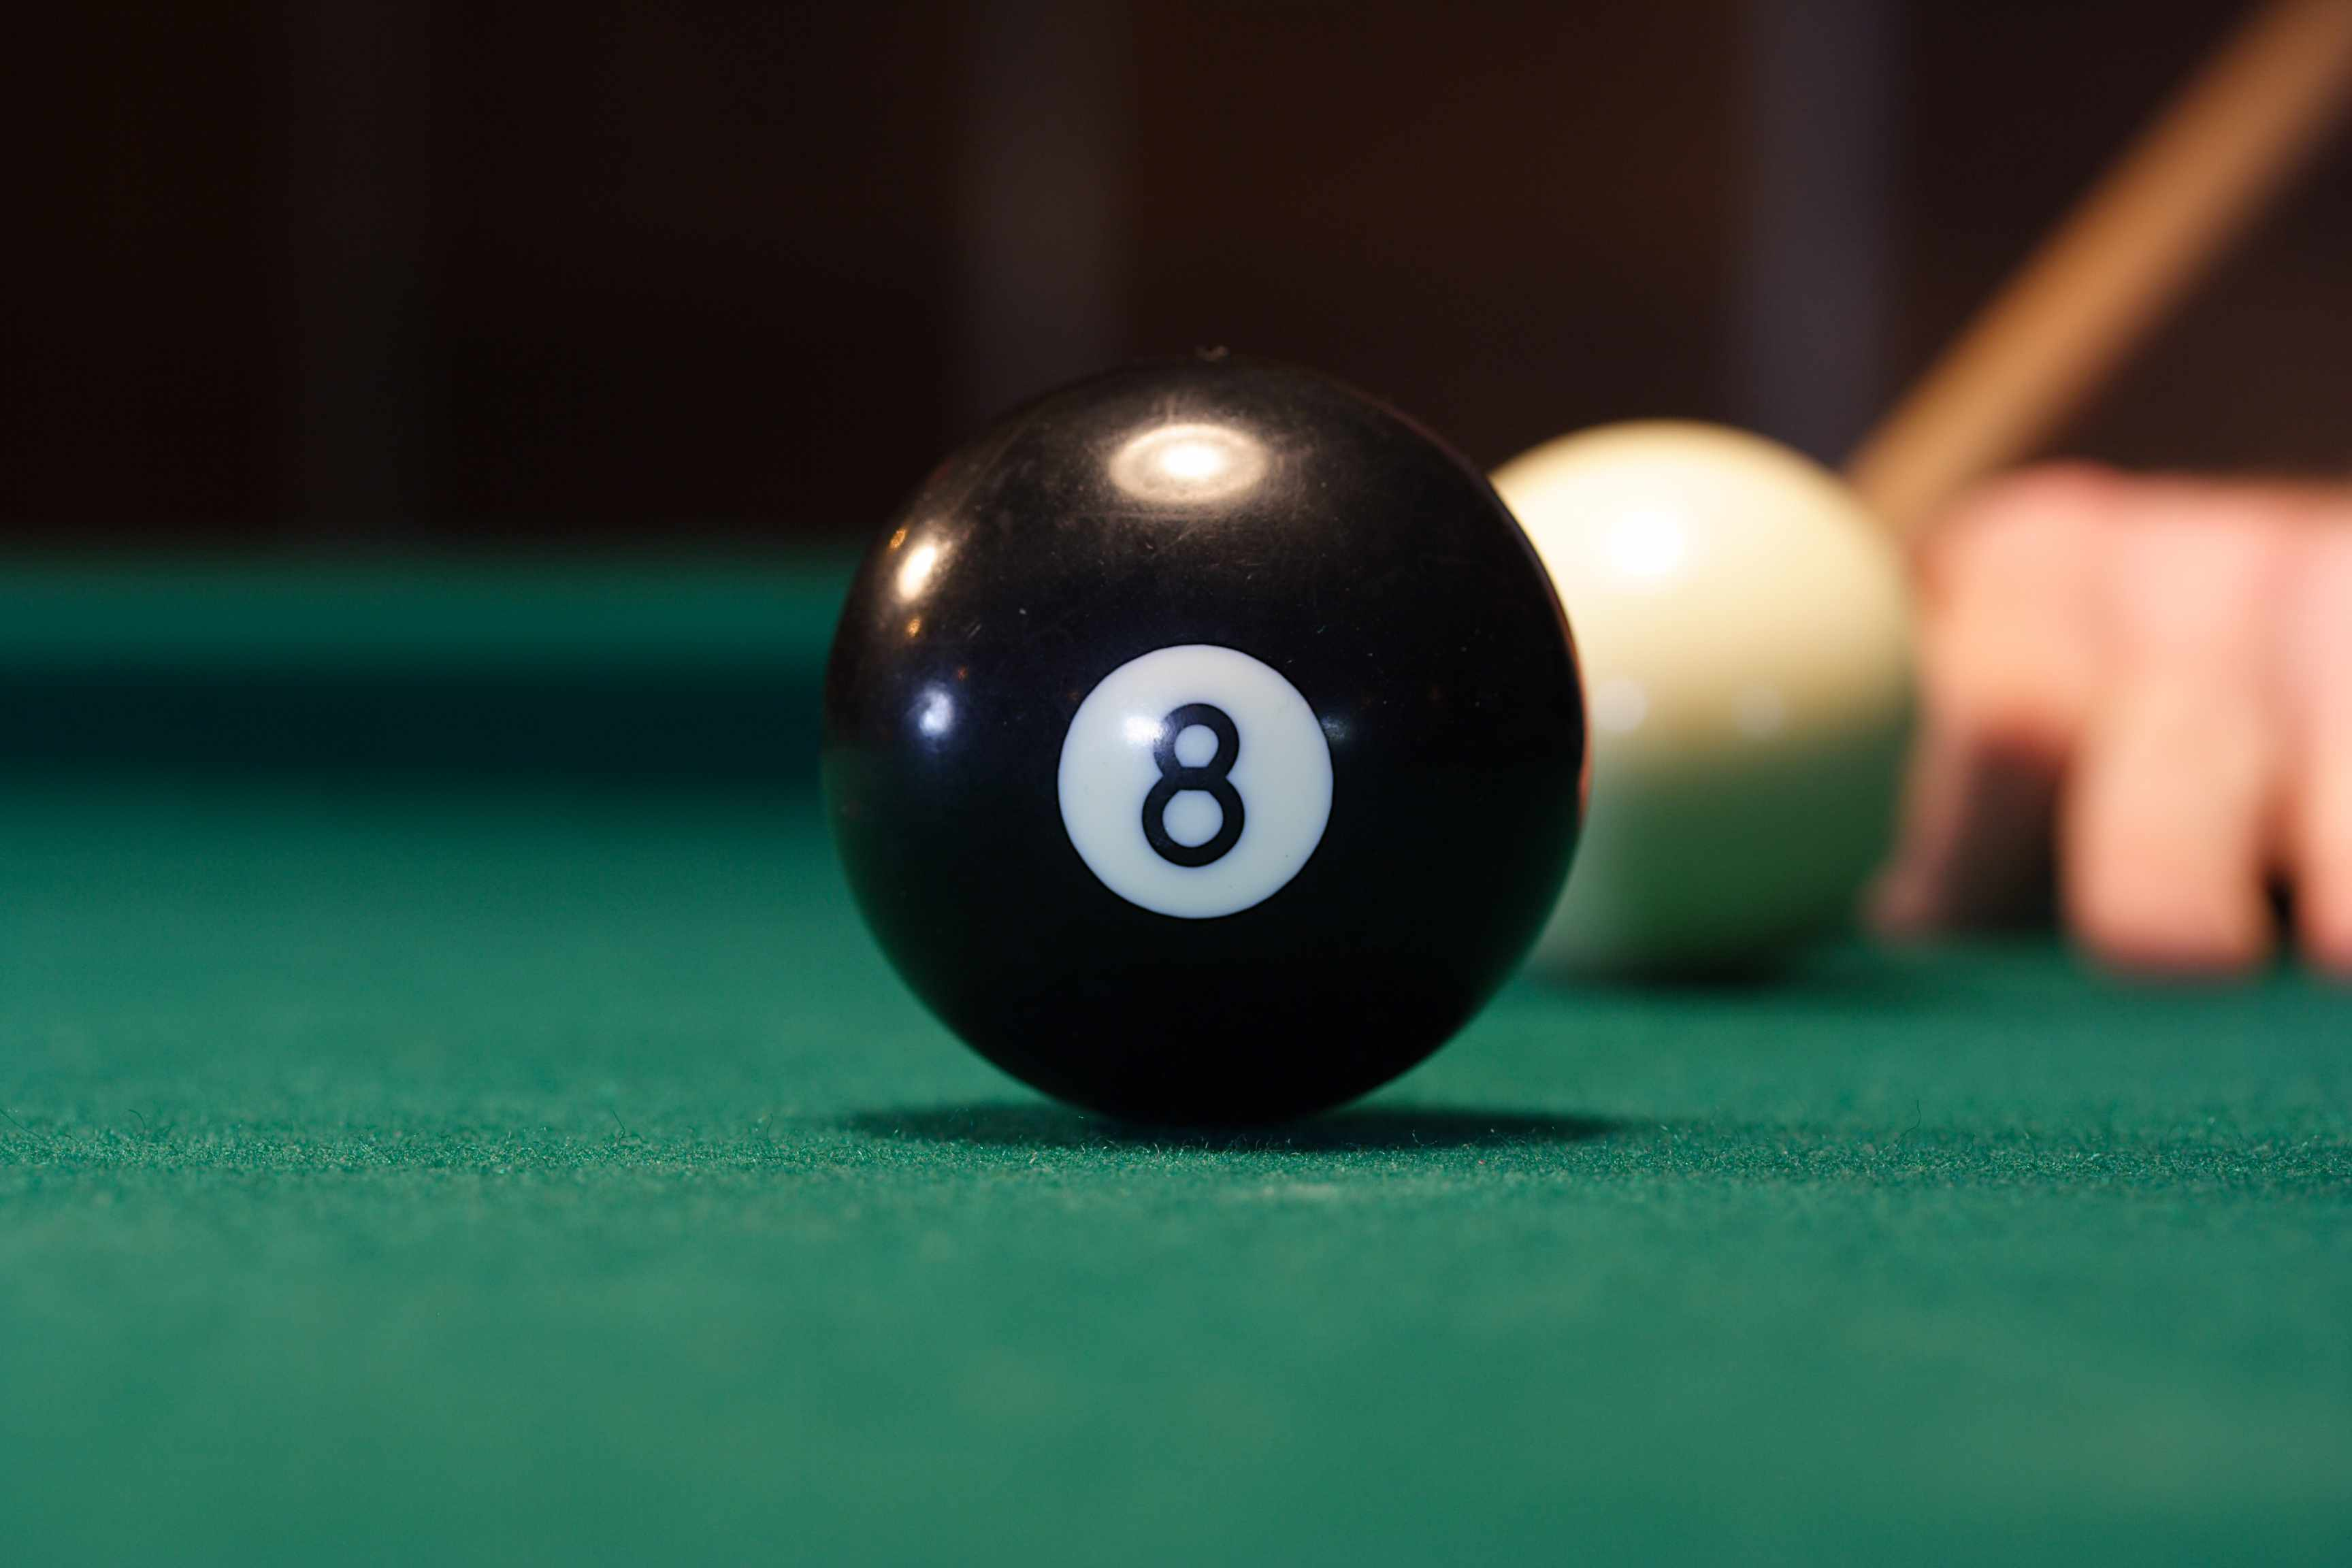 Eight ball centered on pool table